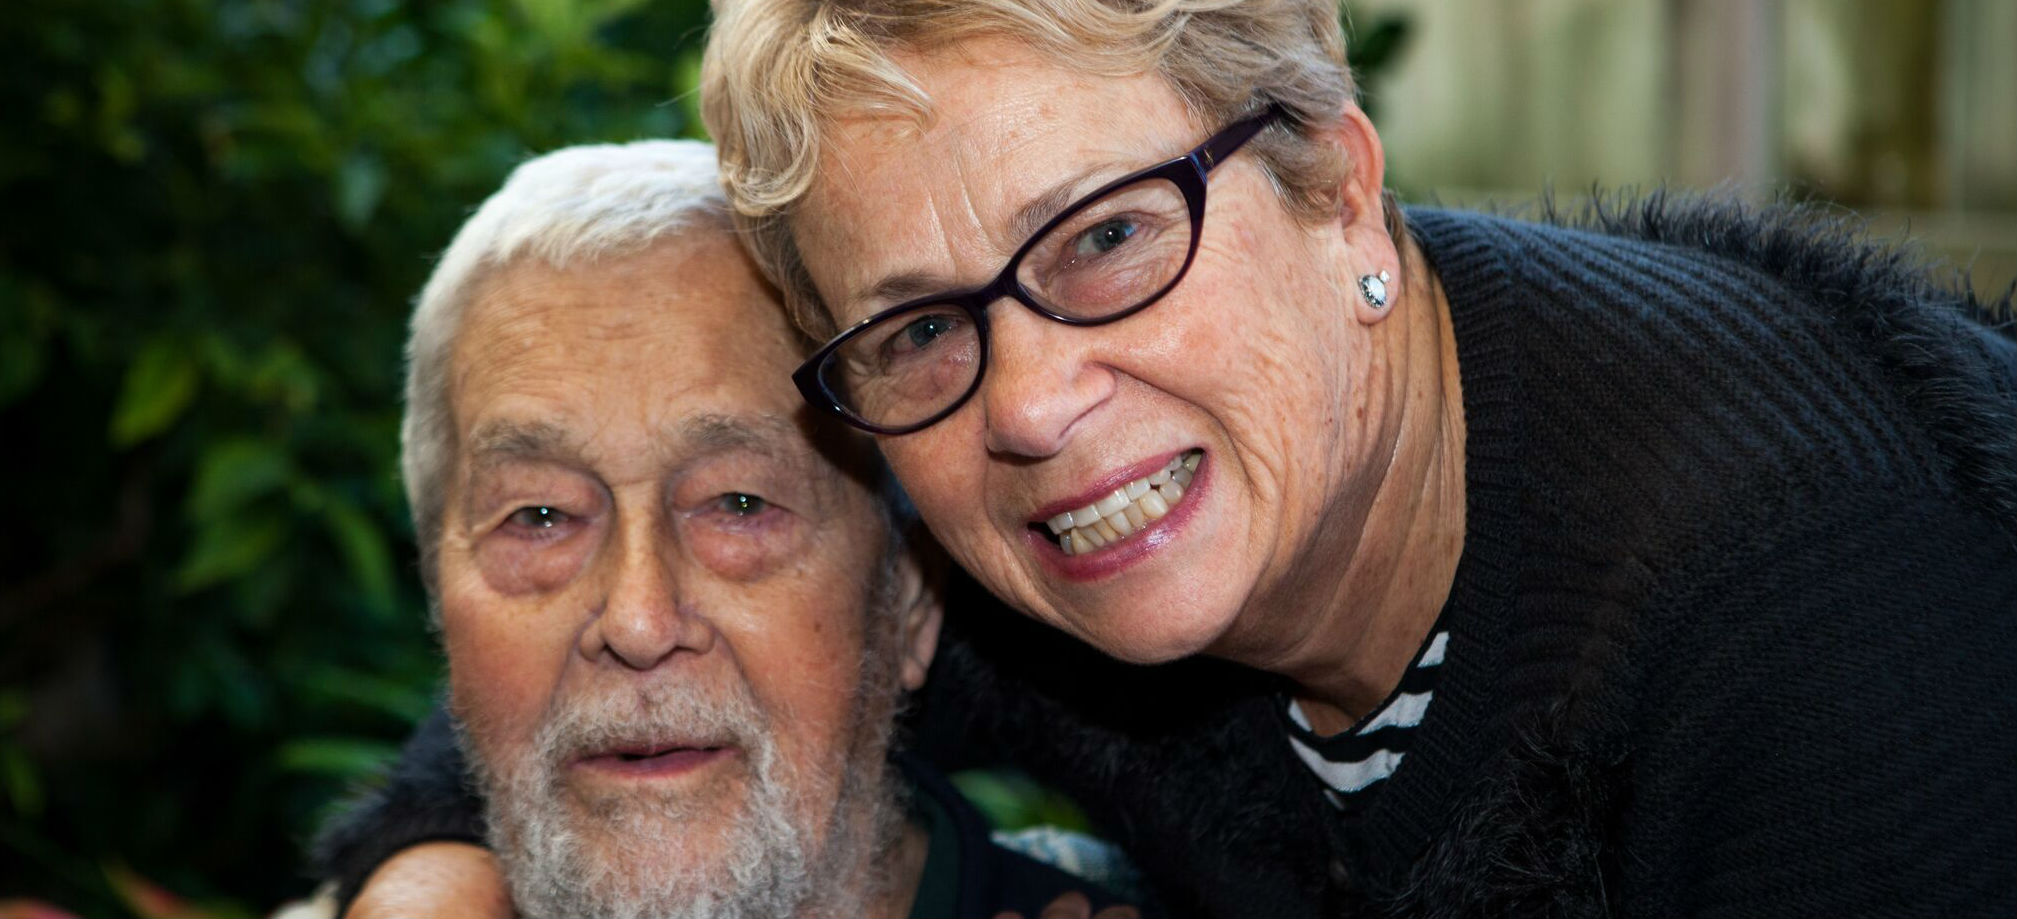 Elderly man and lady together